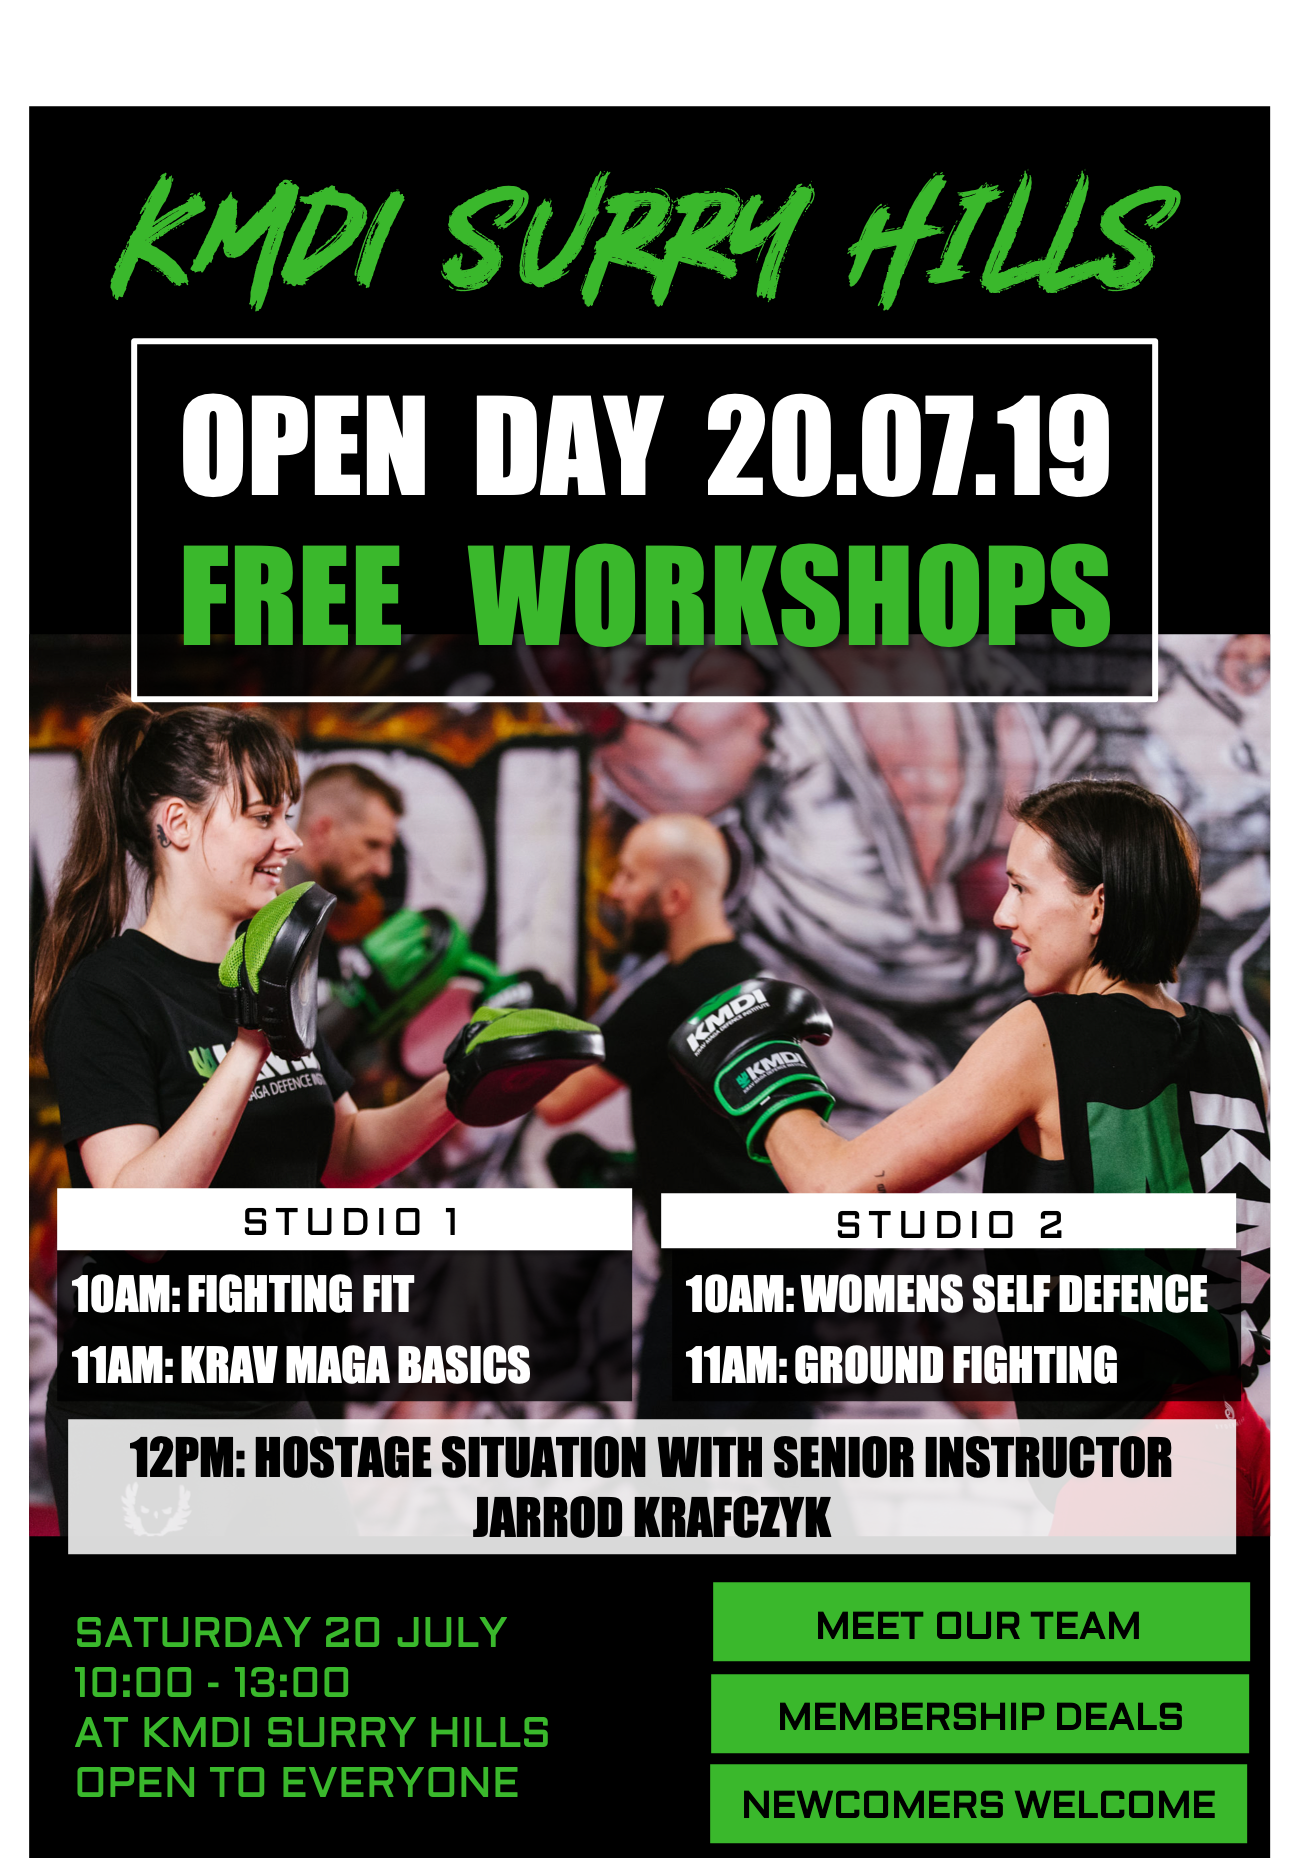 KMDI-openday-20.07.19-poster-FINAL.png.png